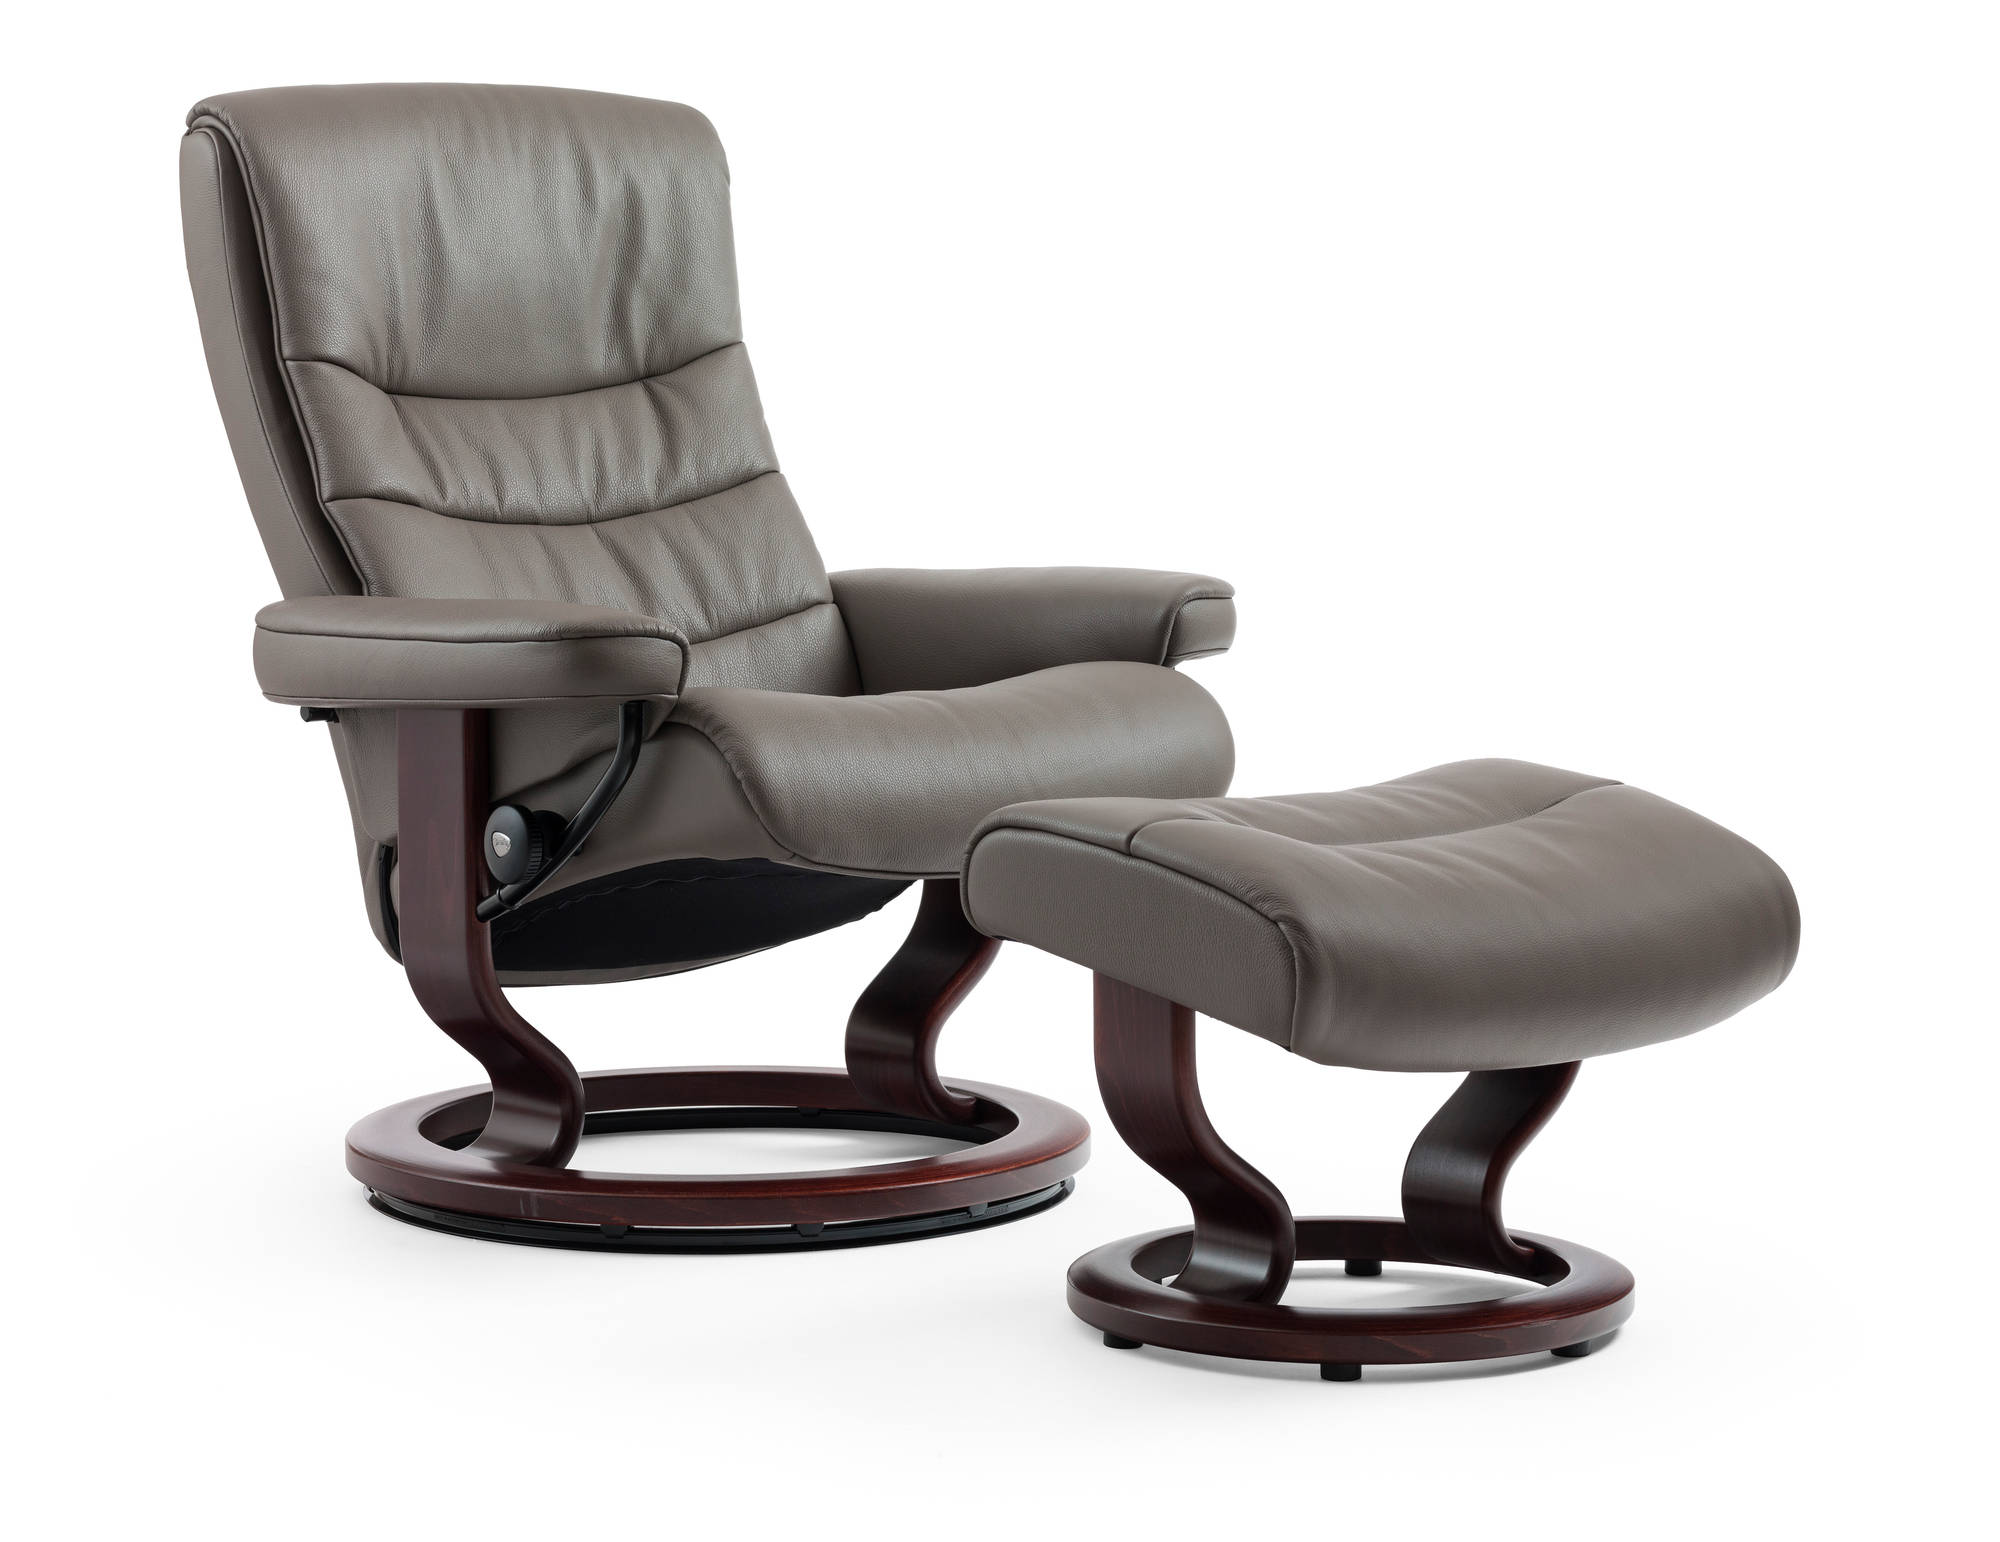 Grey Model Of High End Recliners With Footer  sc 1 st  HomesFeed & High End Recliners | HomesFeed islam-shia.org